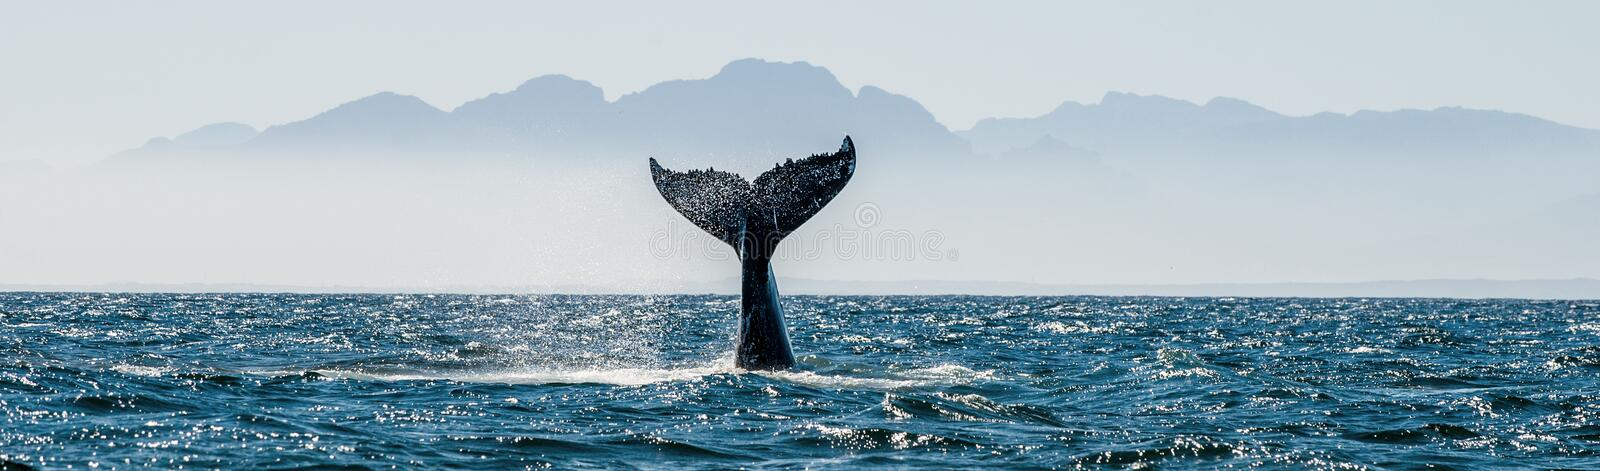 Seascape with Whale tail royalty free stock image